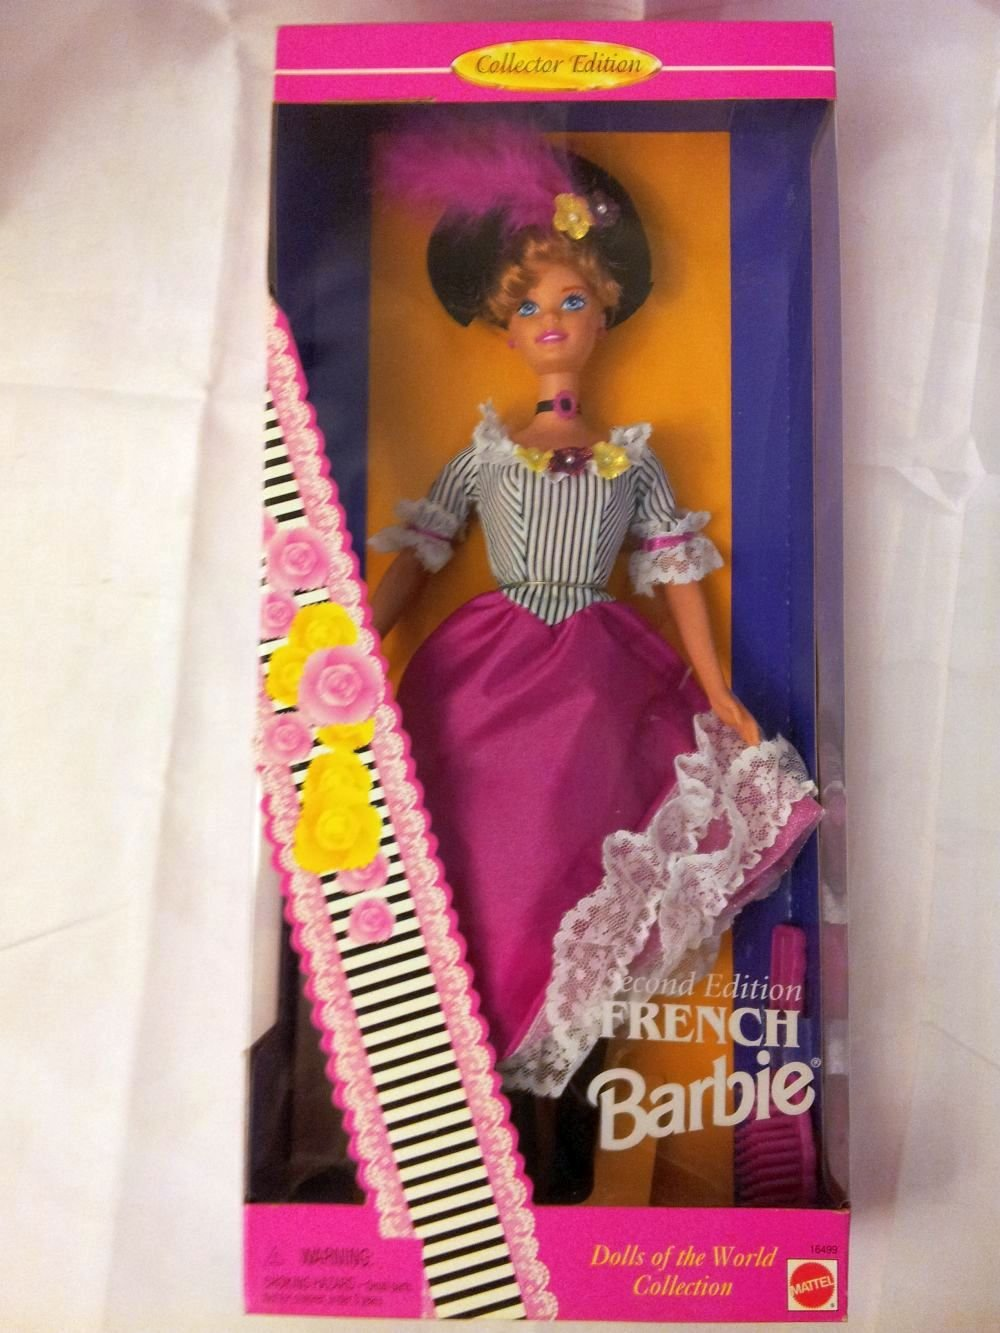 French Barbie Doll Of The World Collection 1996 Buy Online In Barbados Barbie Products In Barbados See Prices Reviews And Free Delivery Over Bds 150 Desertcart